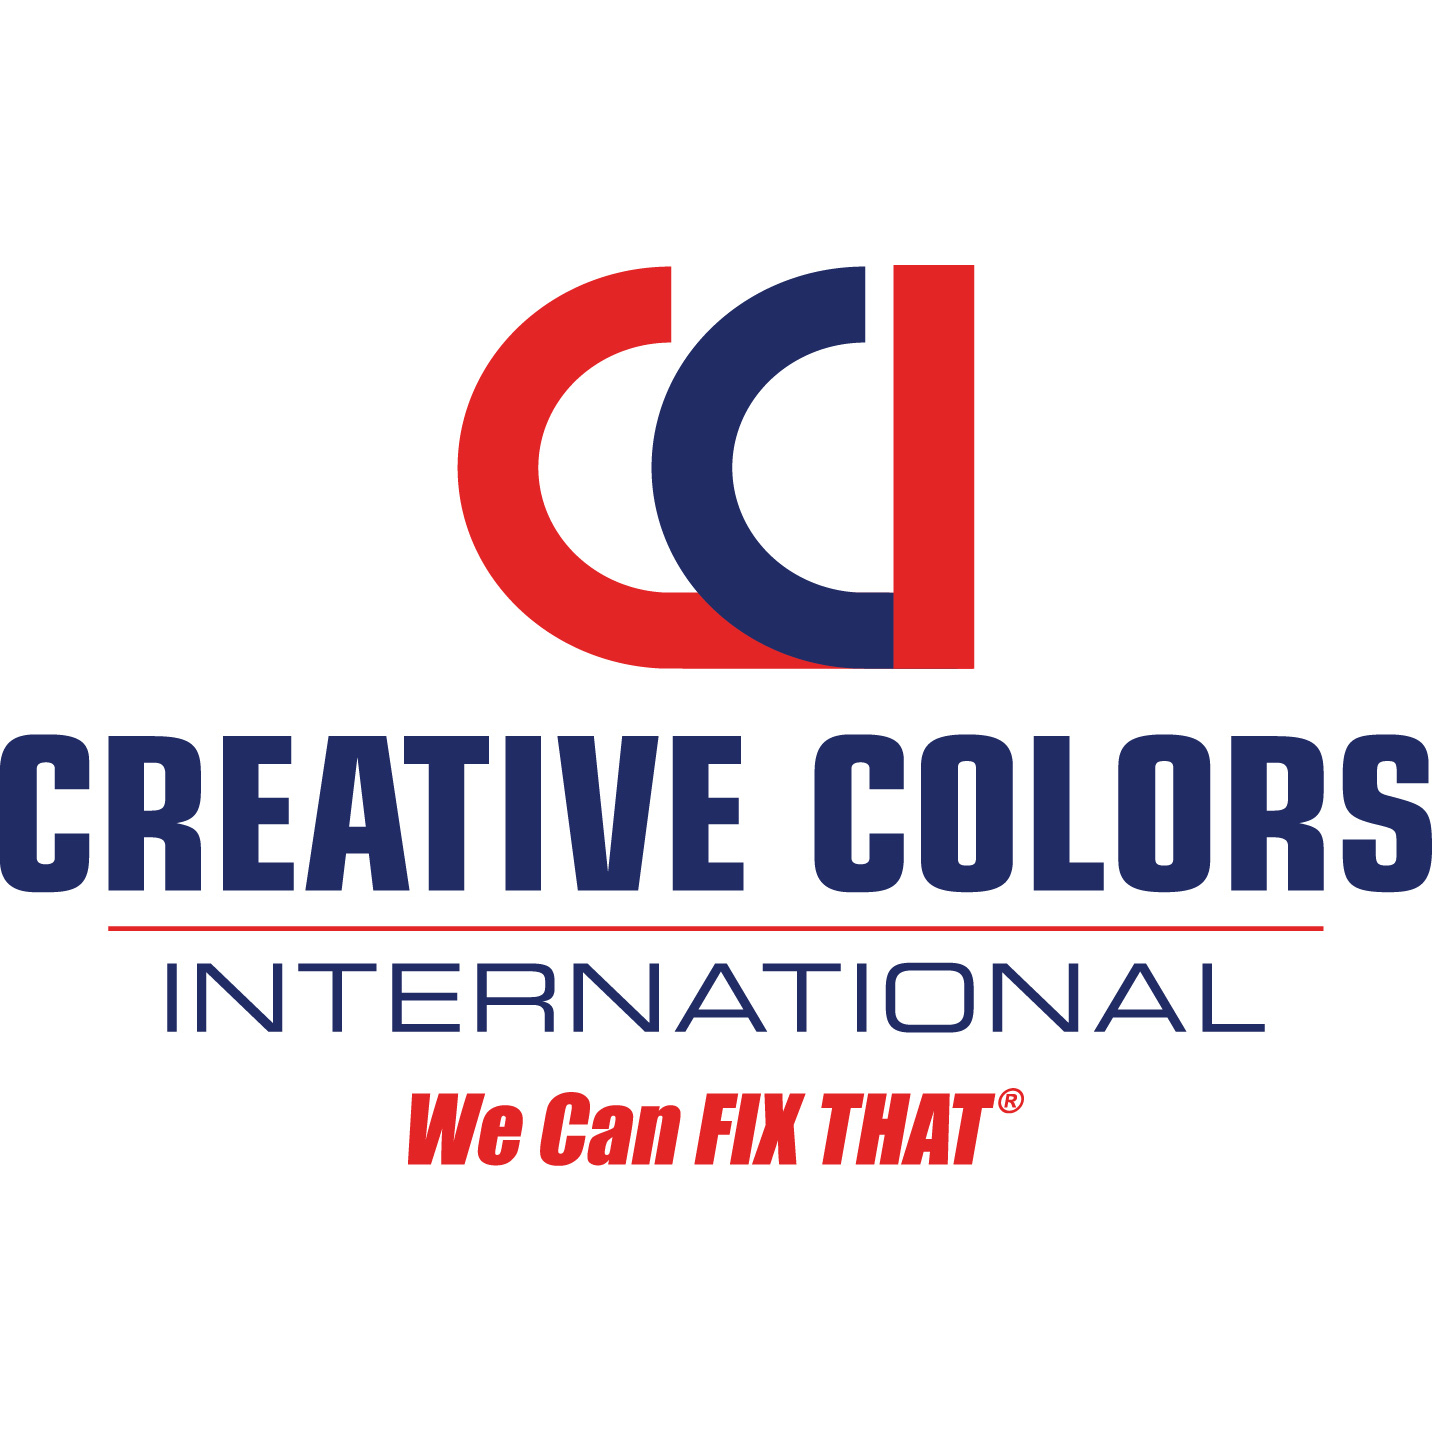 Creative Colors International image 28